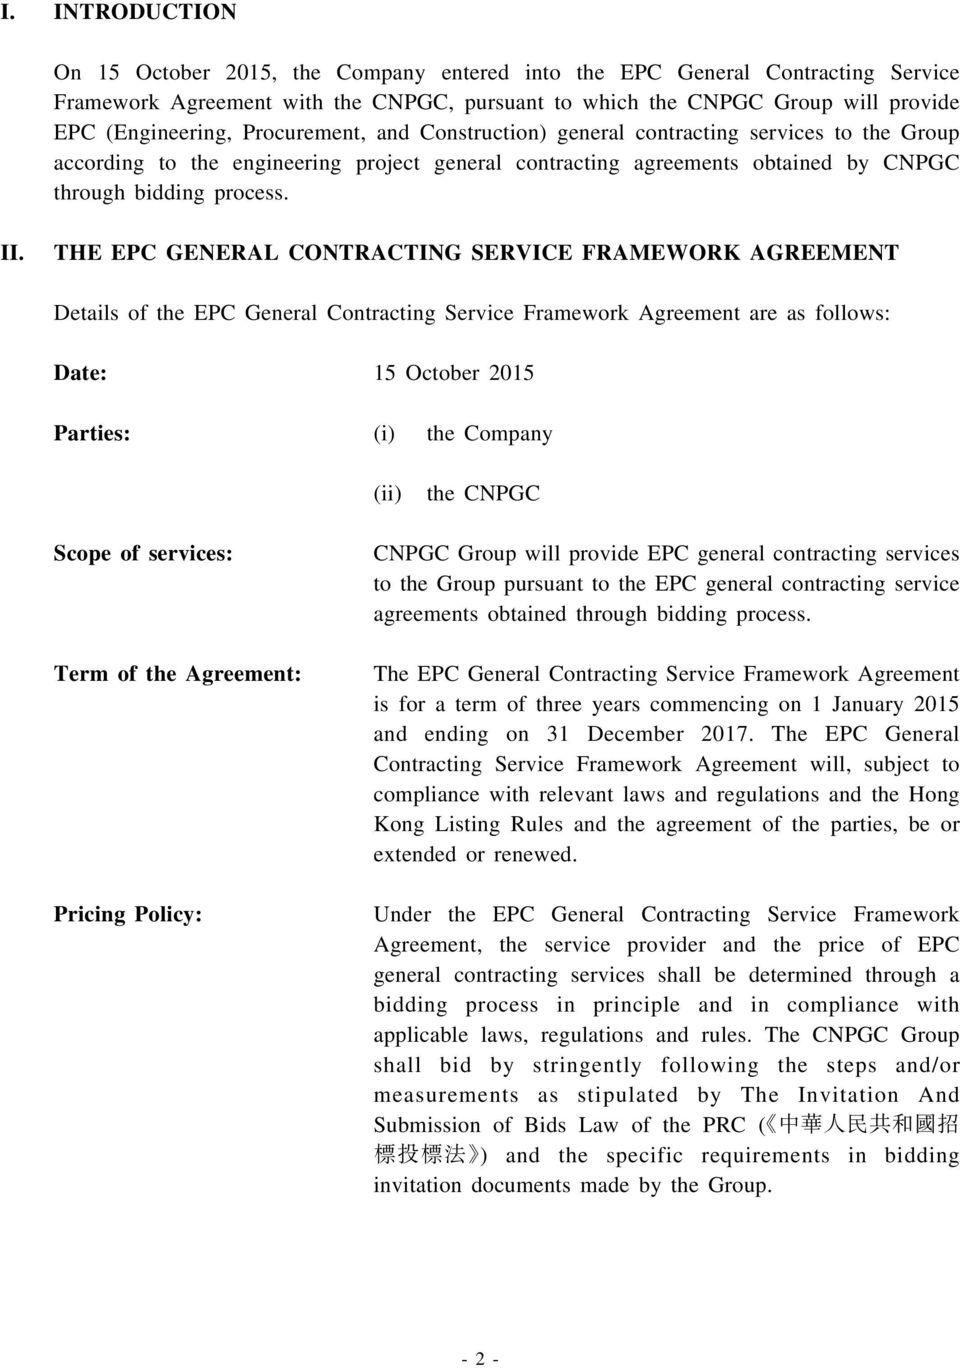 THE EPC GENERAL CONTRACTING SERVICE FRAMEWORK AGREEMENT Details of the EPC General Contracting Service Framework Agreement are as follows: Date: 15 October 2015 Parties: (i) the Company (ii) the